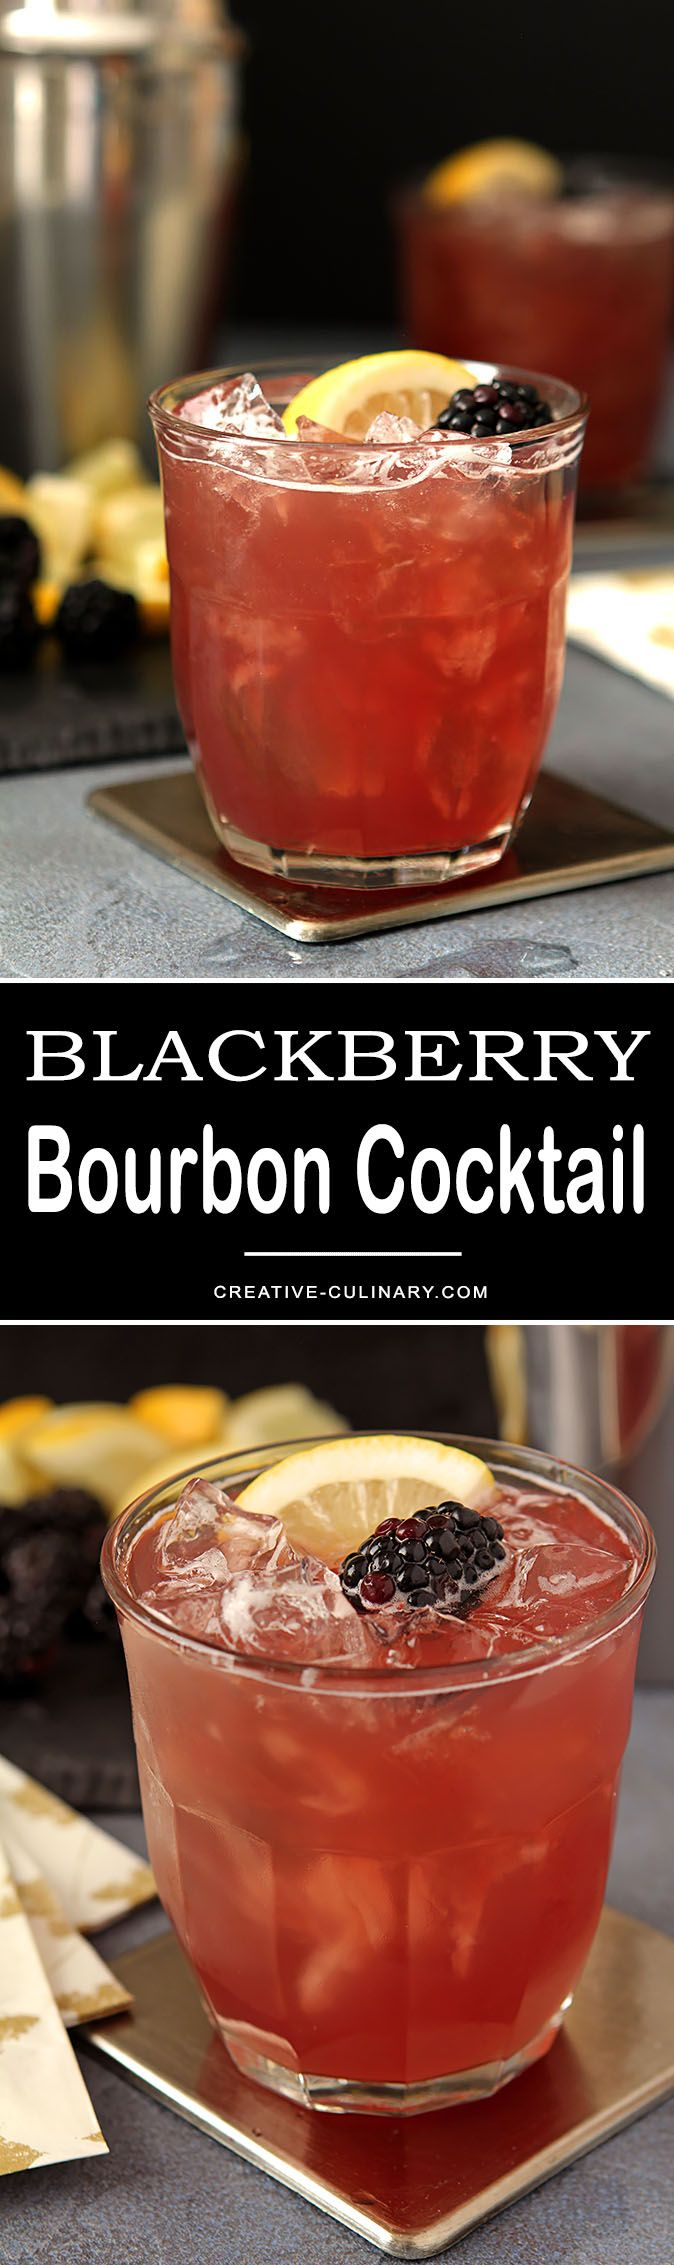 A great seasonal cocktail from fall through winter. Blackberry liqueur, lemon, cranberry juice & bourbon make a cocktail that is refreshing and beautiful. via @creativculinary